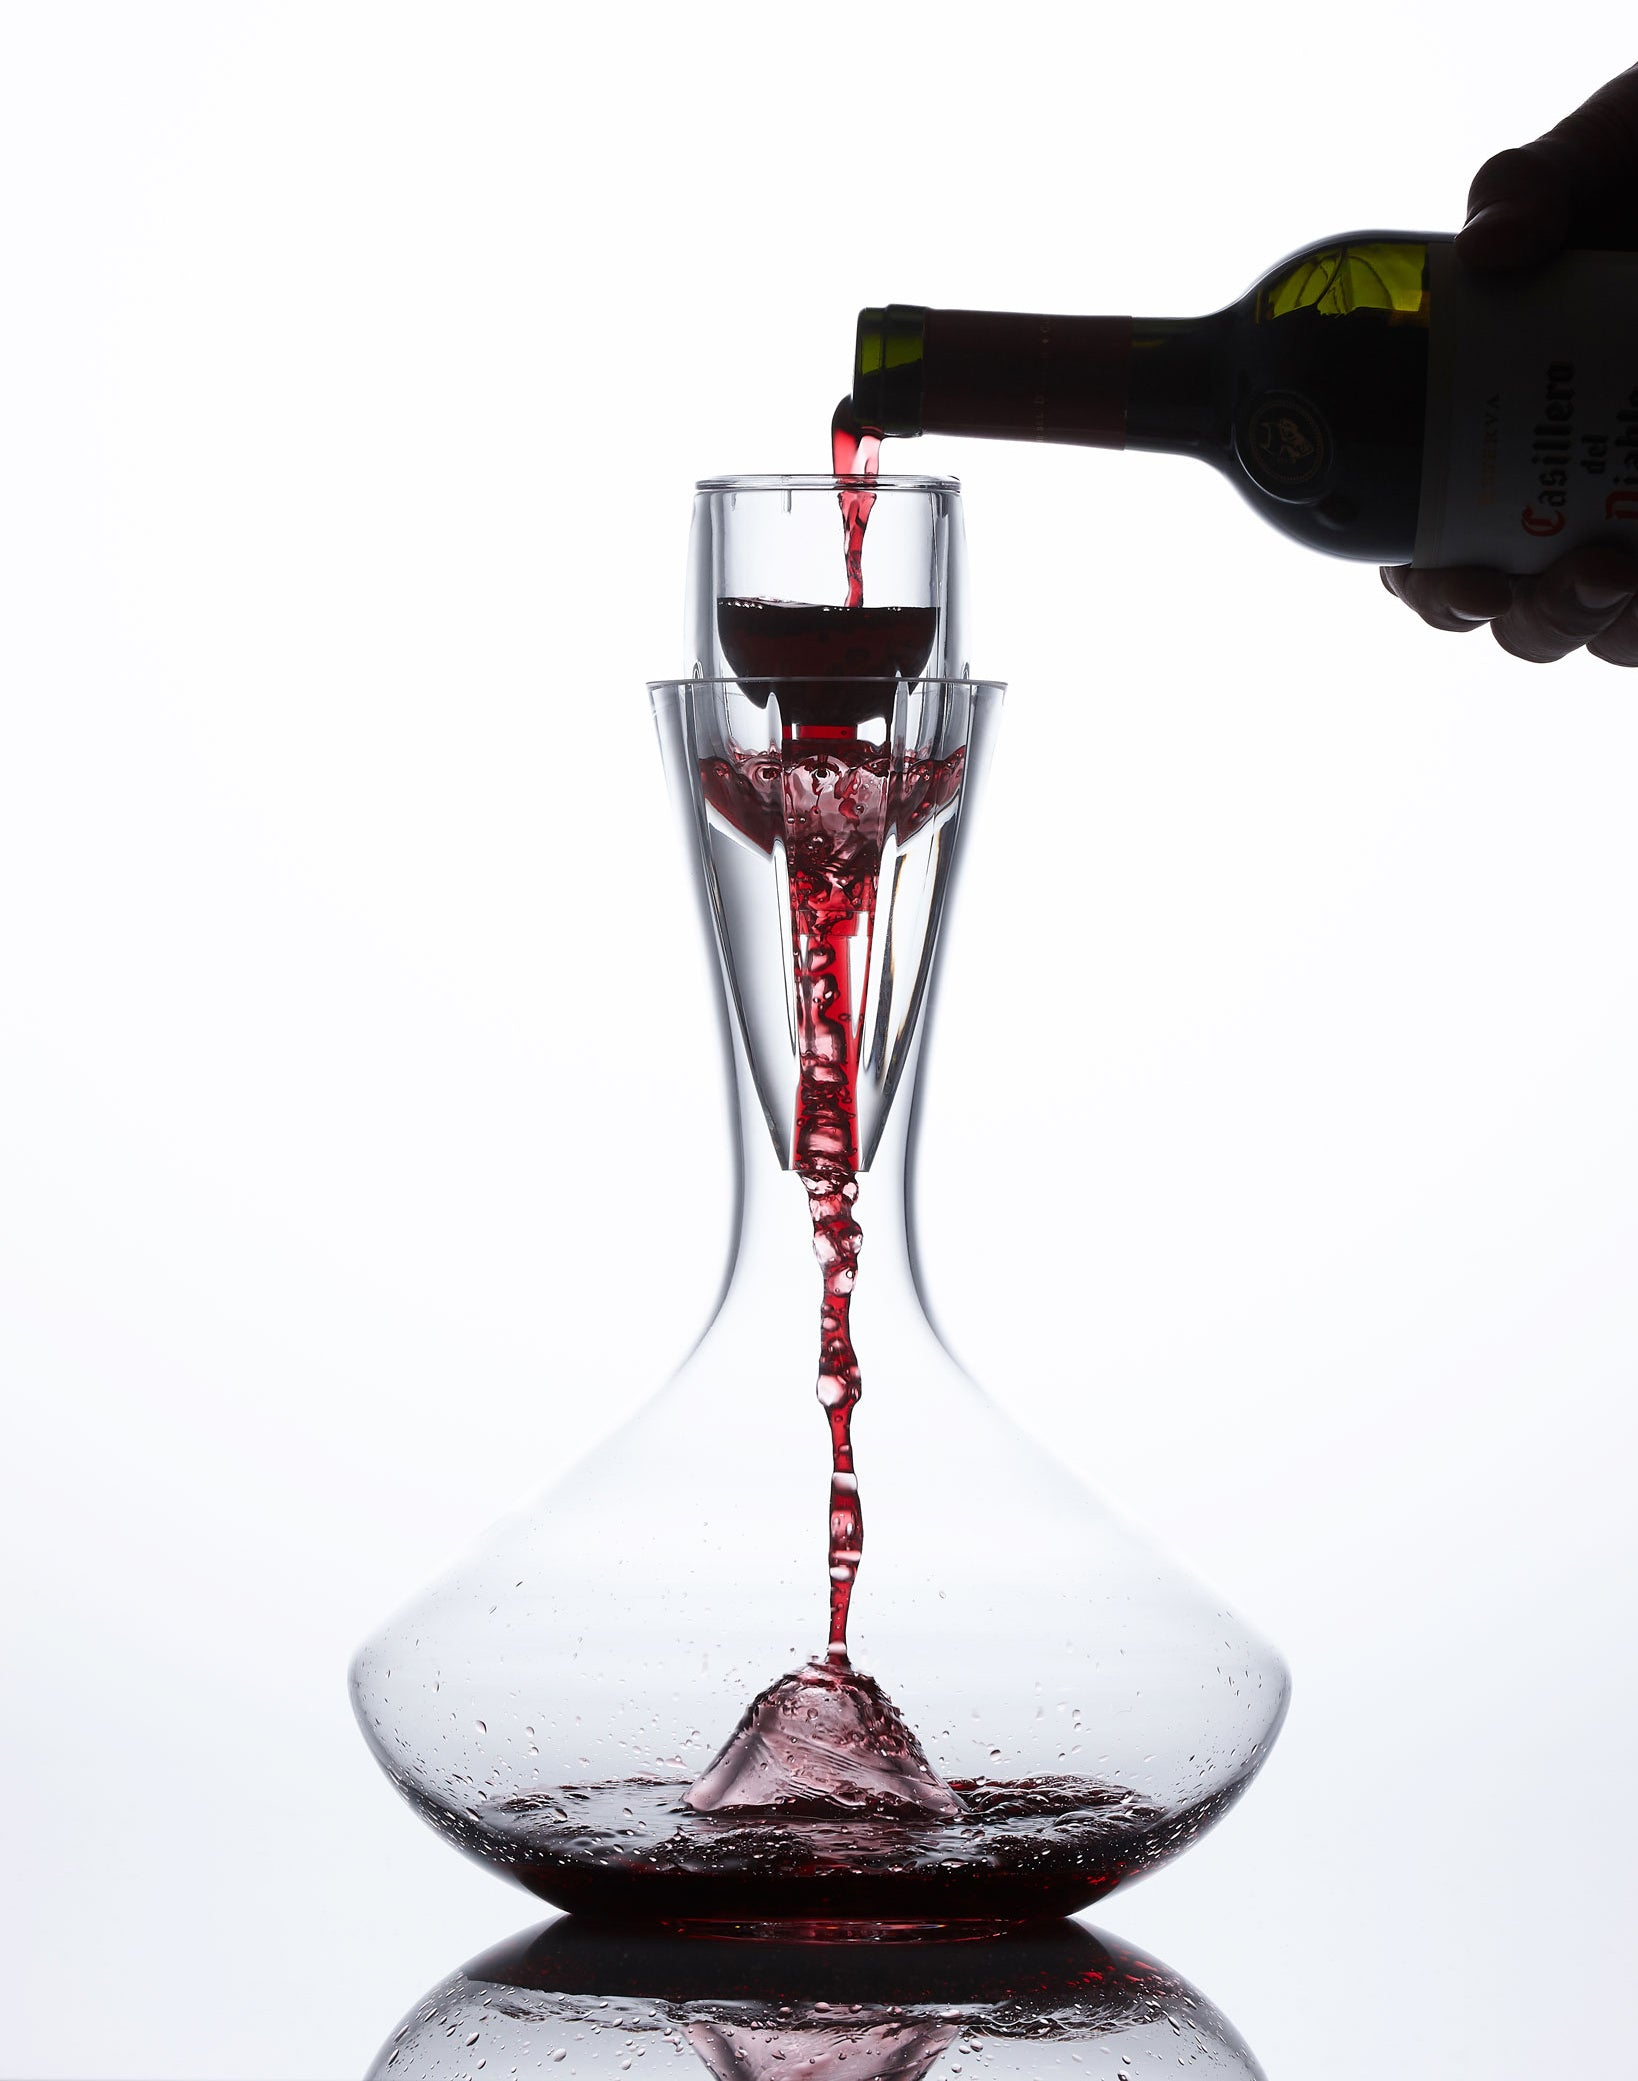 Vintorio Wine Carafe - Unique Gift for any Wine Lover